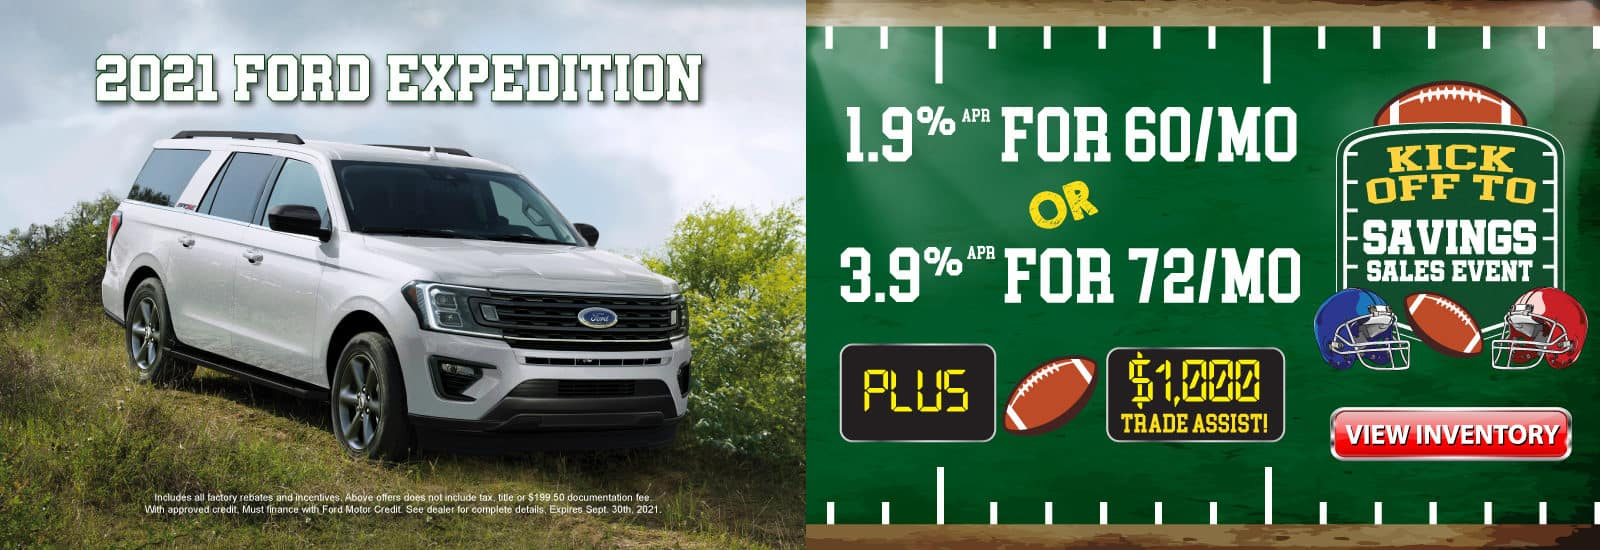 Sept2021-Ford-Expedition-Web-Banner-1600×550